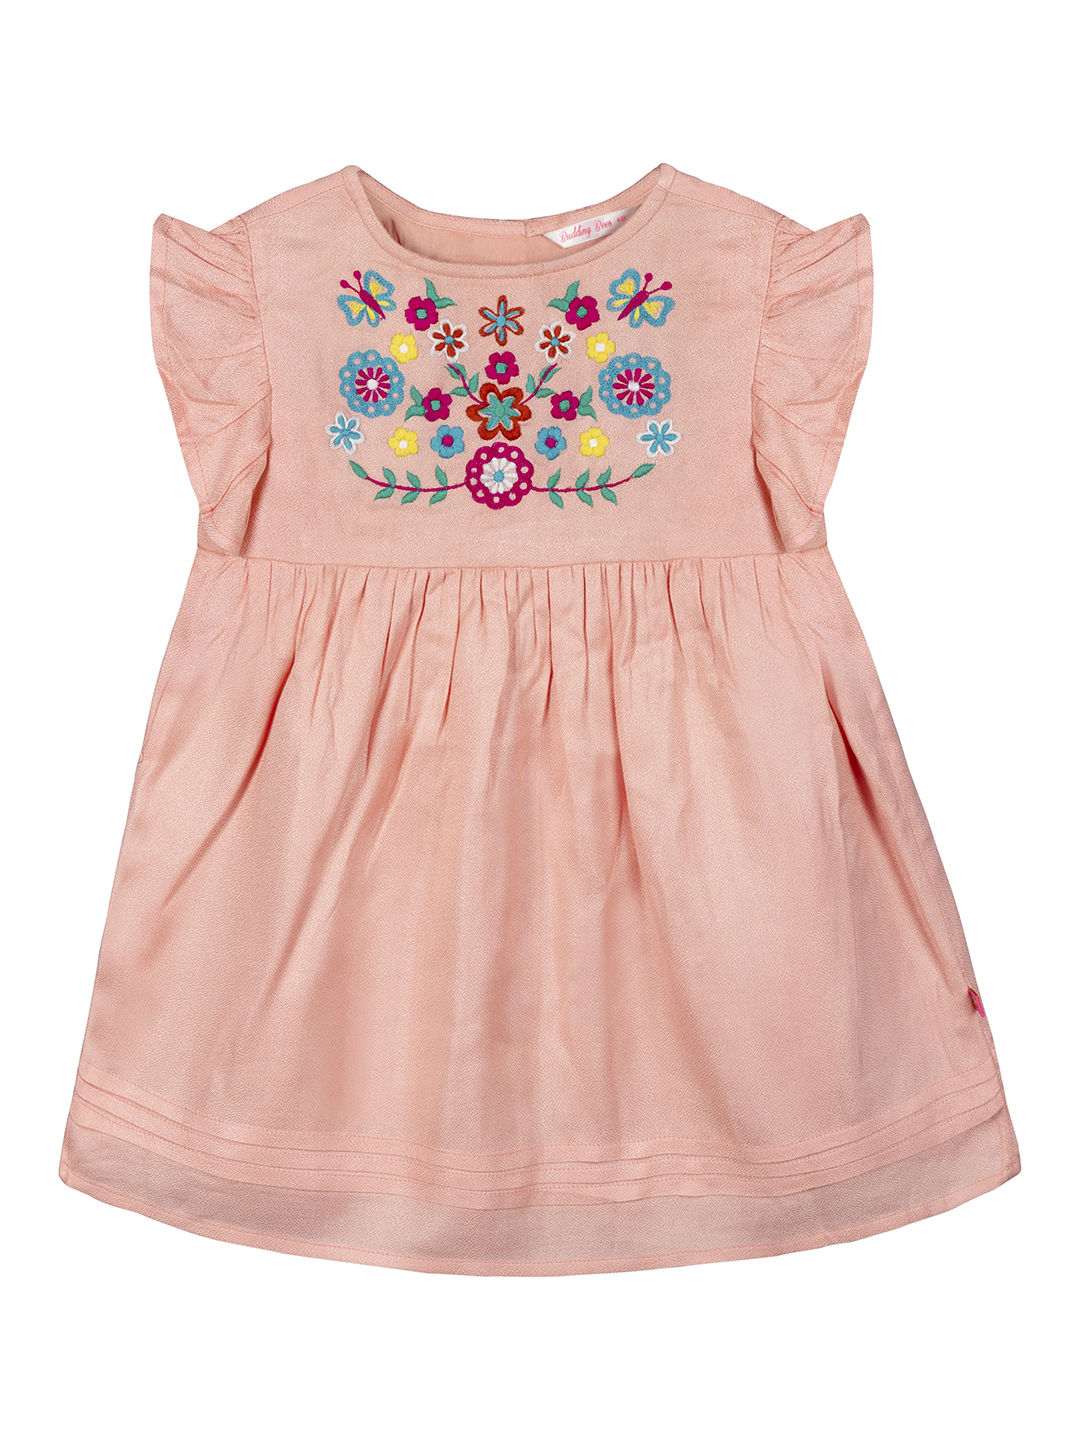 Budding Bees | Budding Bees Girls Embroidered Dress-Pink